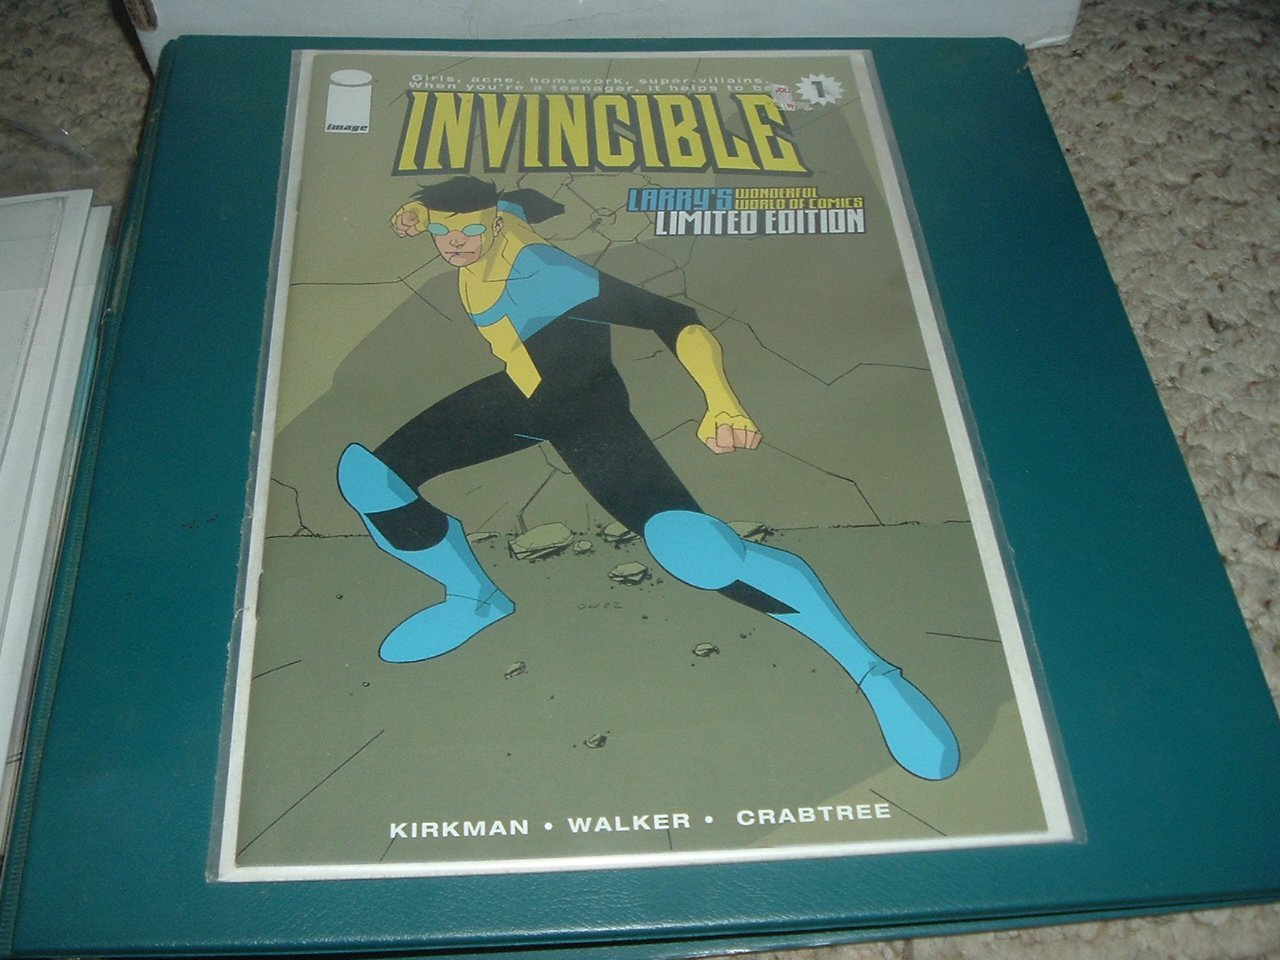 Invincible #1 NEAR MINT 1st Print (Image Comics) Larry's WW Convention Variant edition for sale